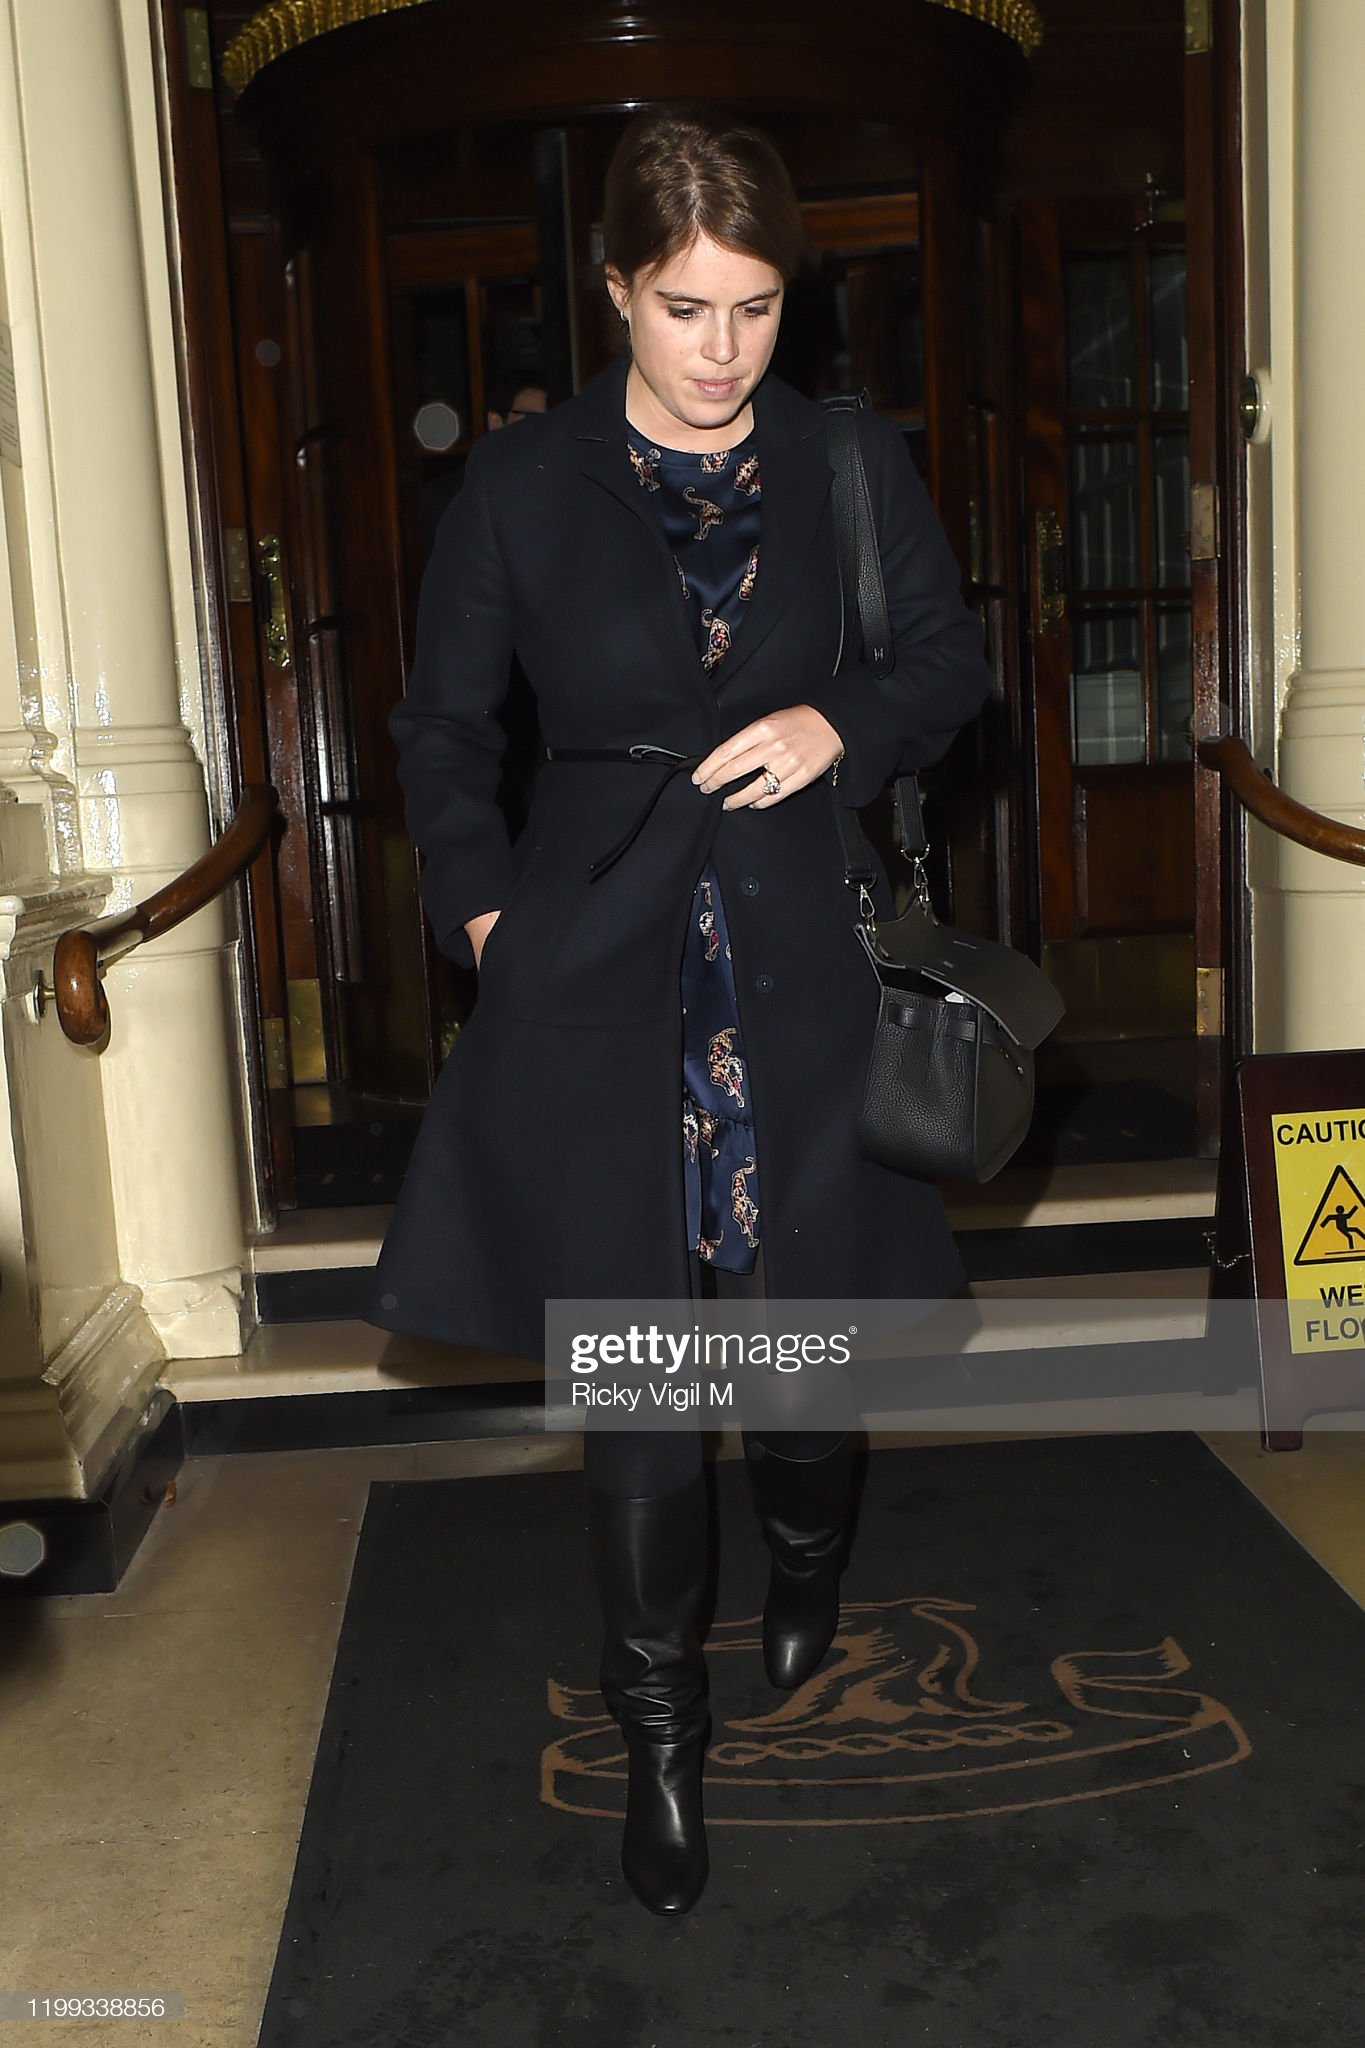 https://media.gettyimages.com/photos/princess-eugenie-seen-on-a-night-out-leaving-the-connaught-hotel-on-picture-id1199338856?s=2048x2048